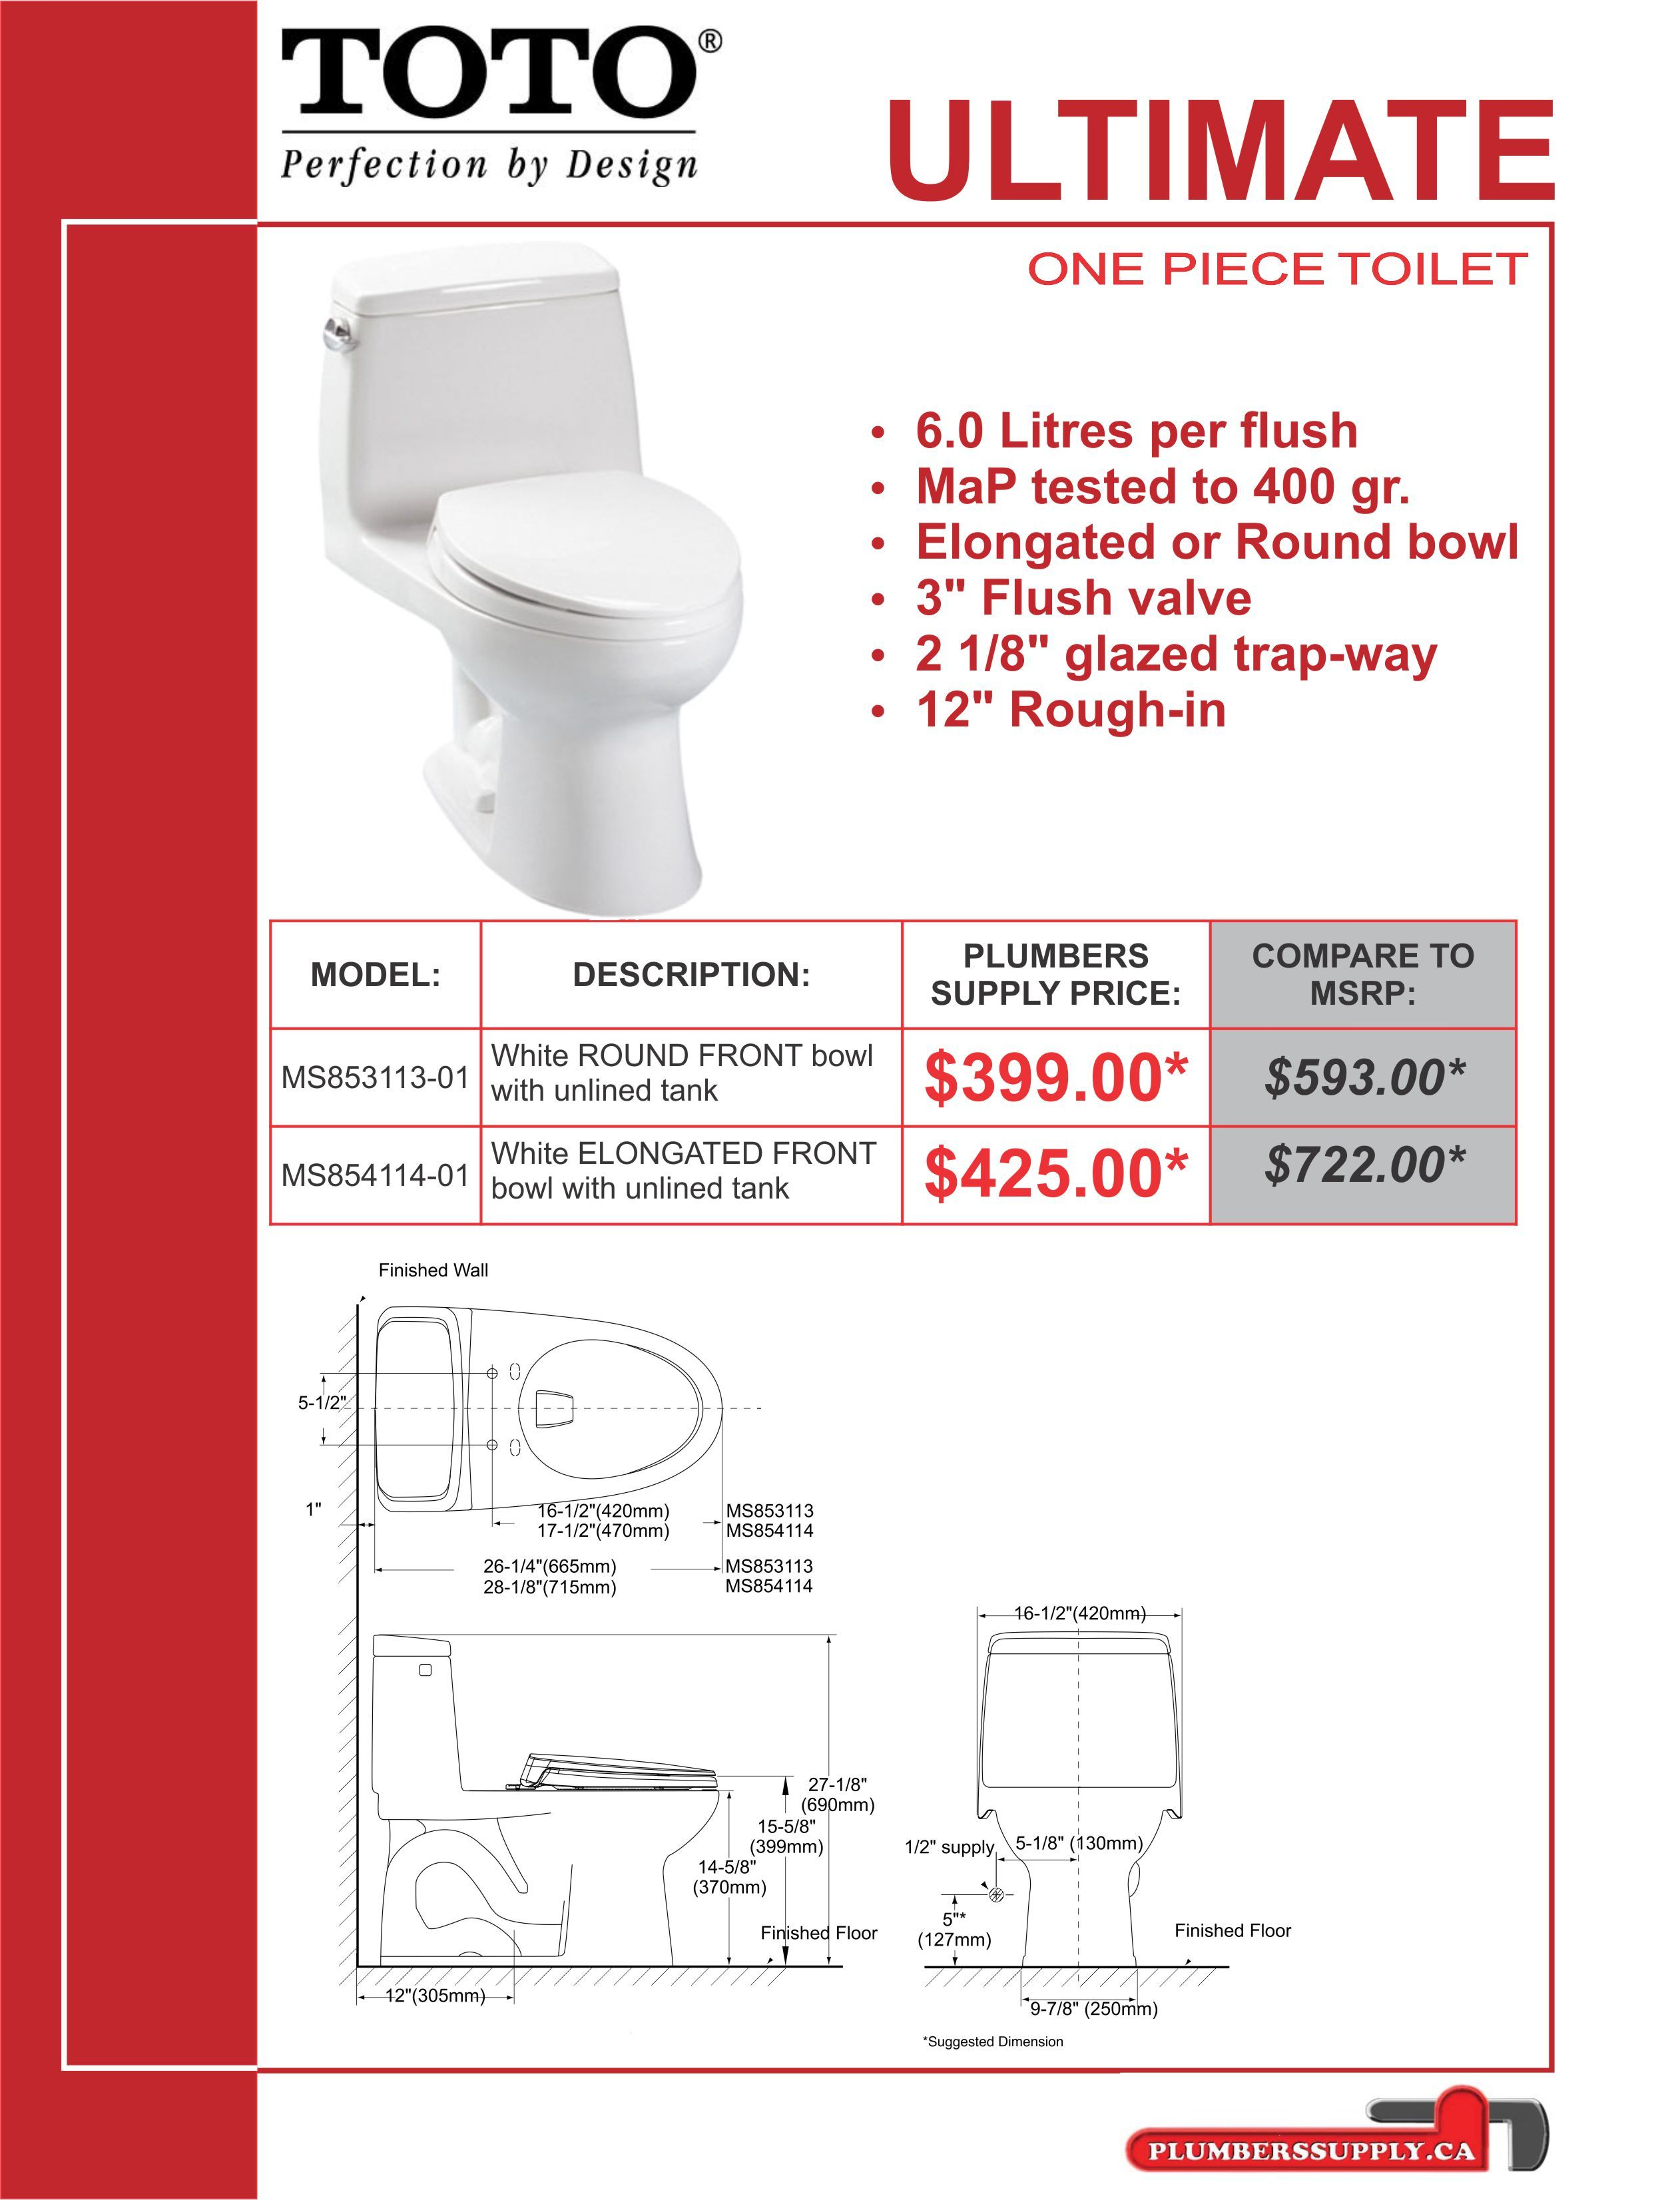 TOTO Ultimate Toilet, White, Round Front on sale from $399 ...